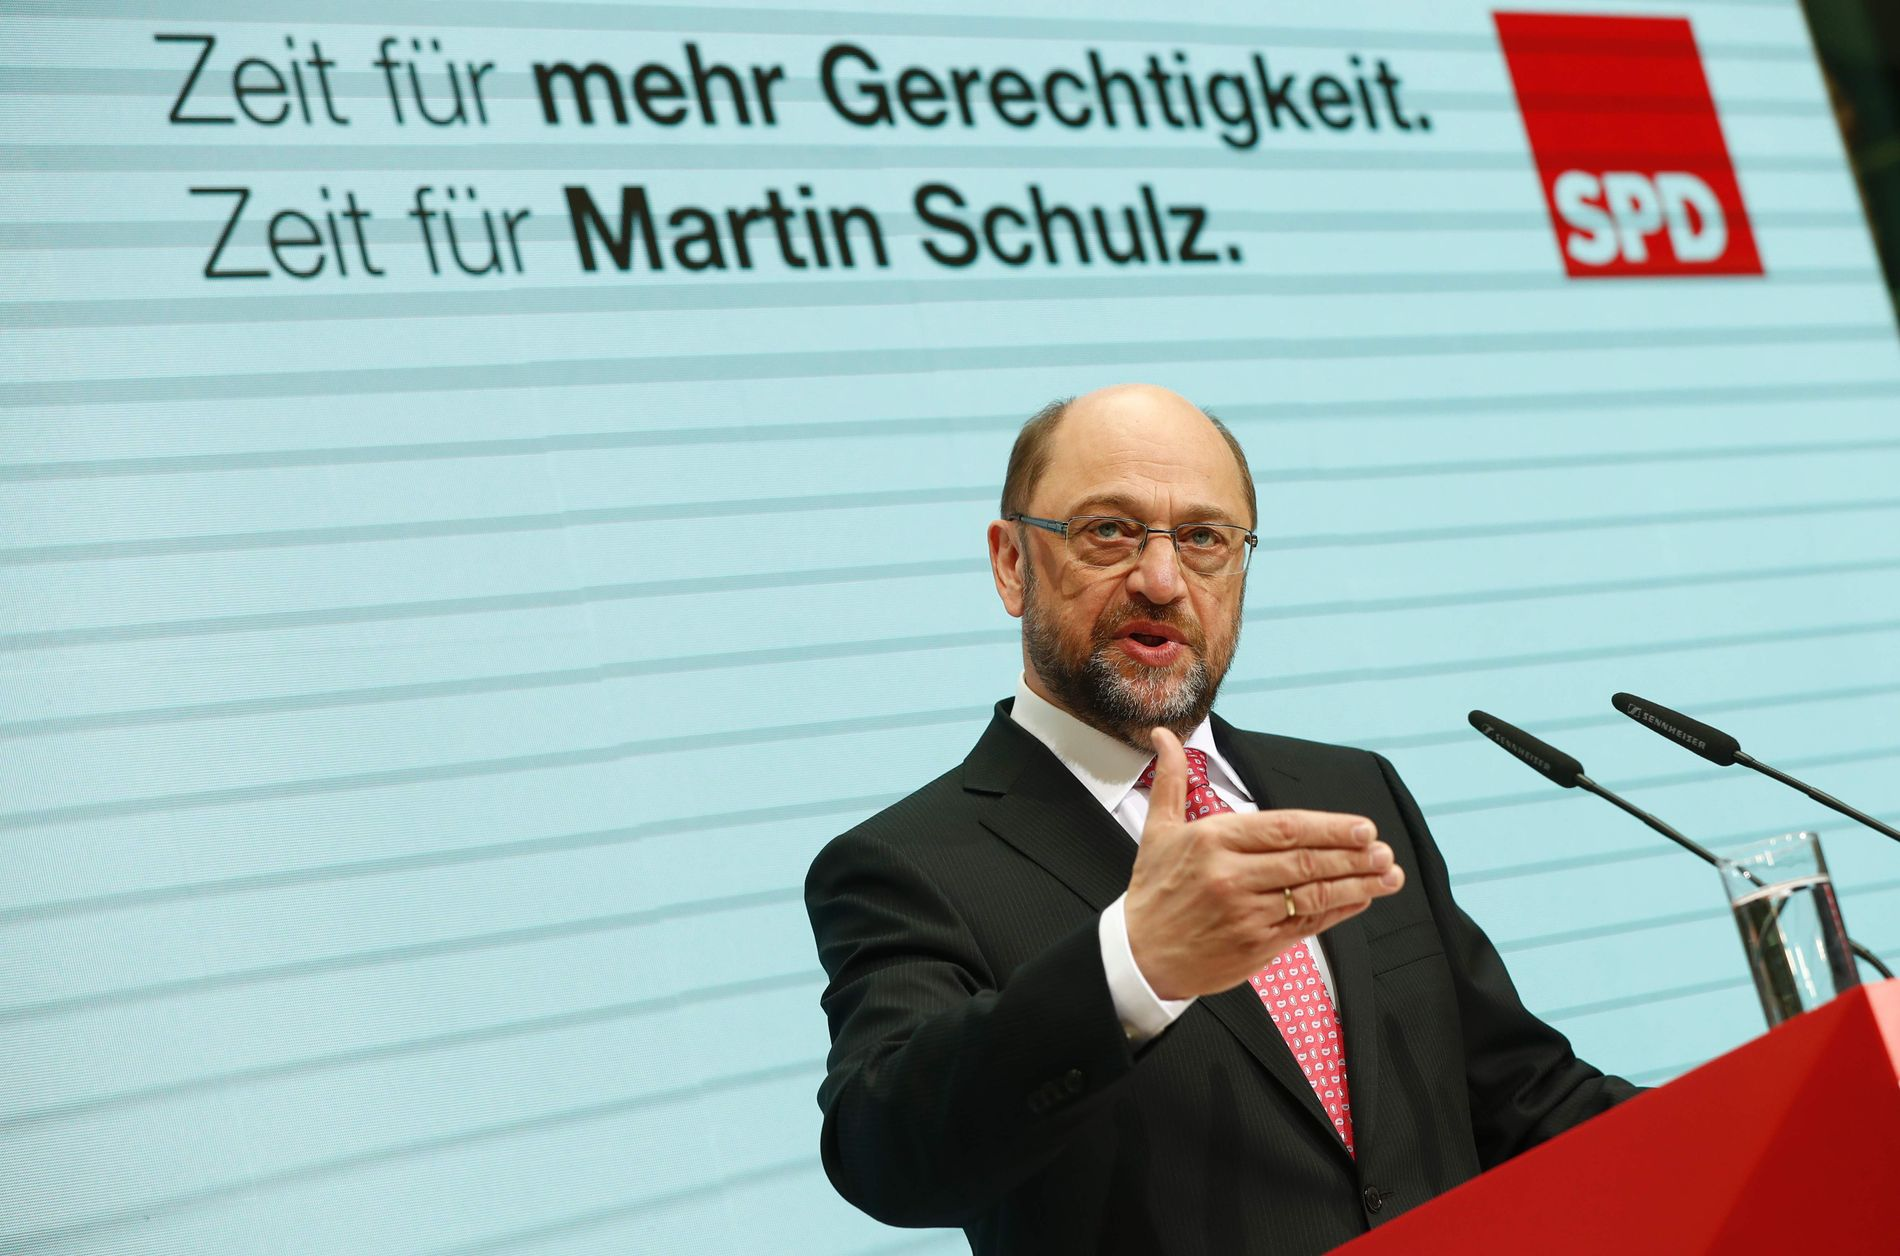 Former European Parliament chief Martin Schulz, Chancellor candidate of Germany's Social Democratic Party (SPD), gis a press conference at the SPD headquarters in Berlin on January 30, 2017. / AFP PHOTO / Odd ANDERSEN